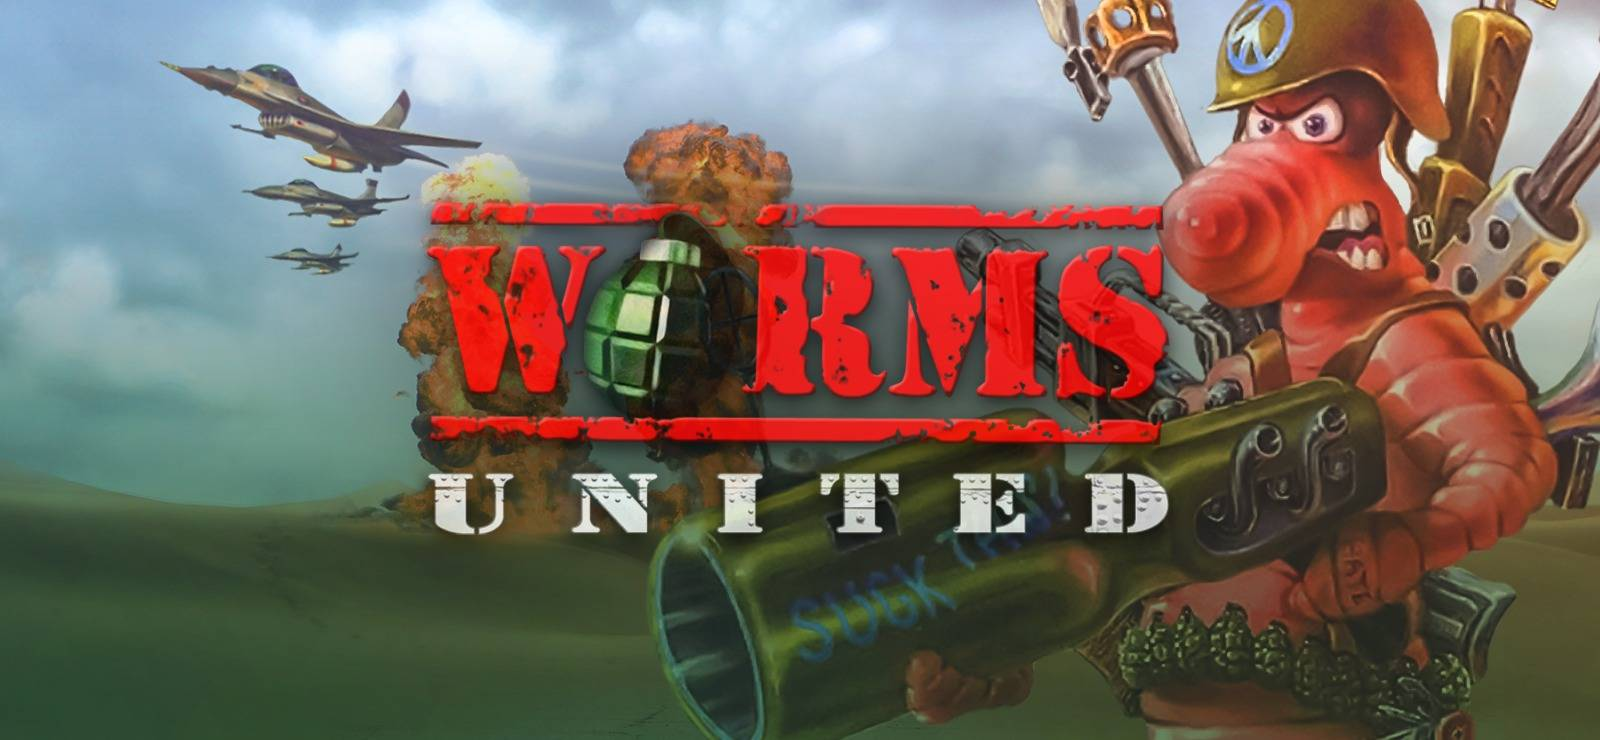 Worms United (1996)